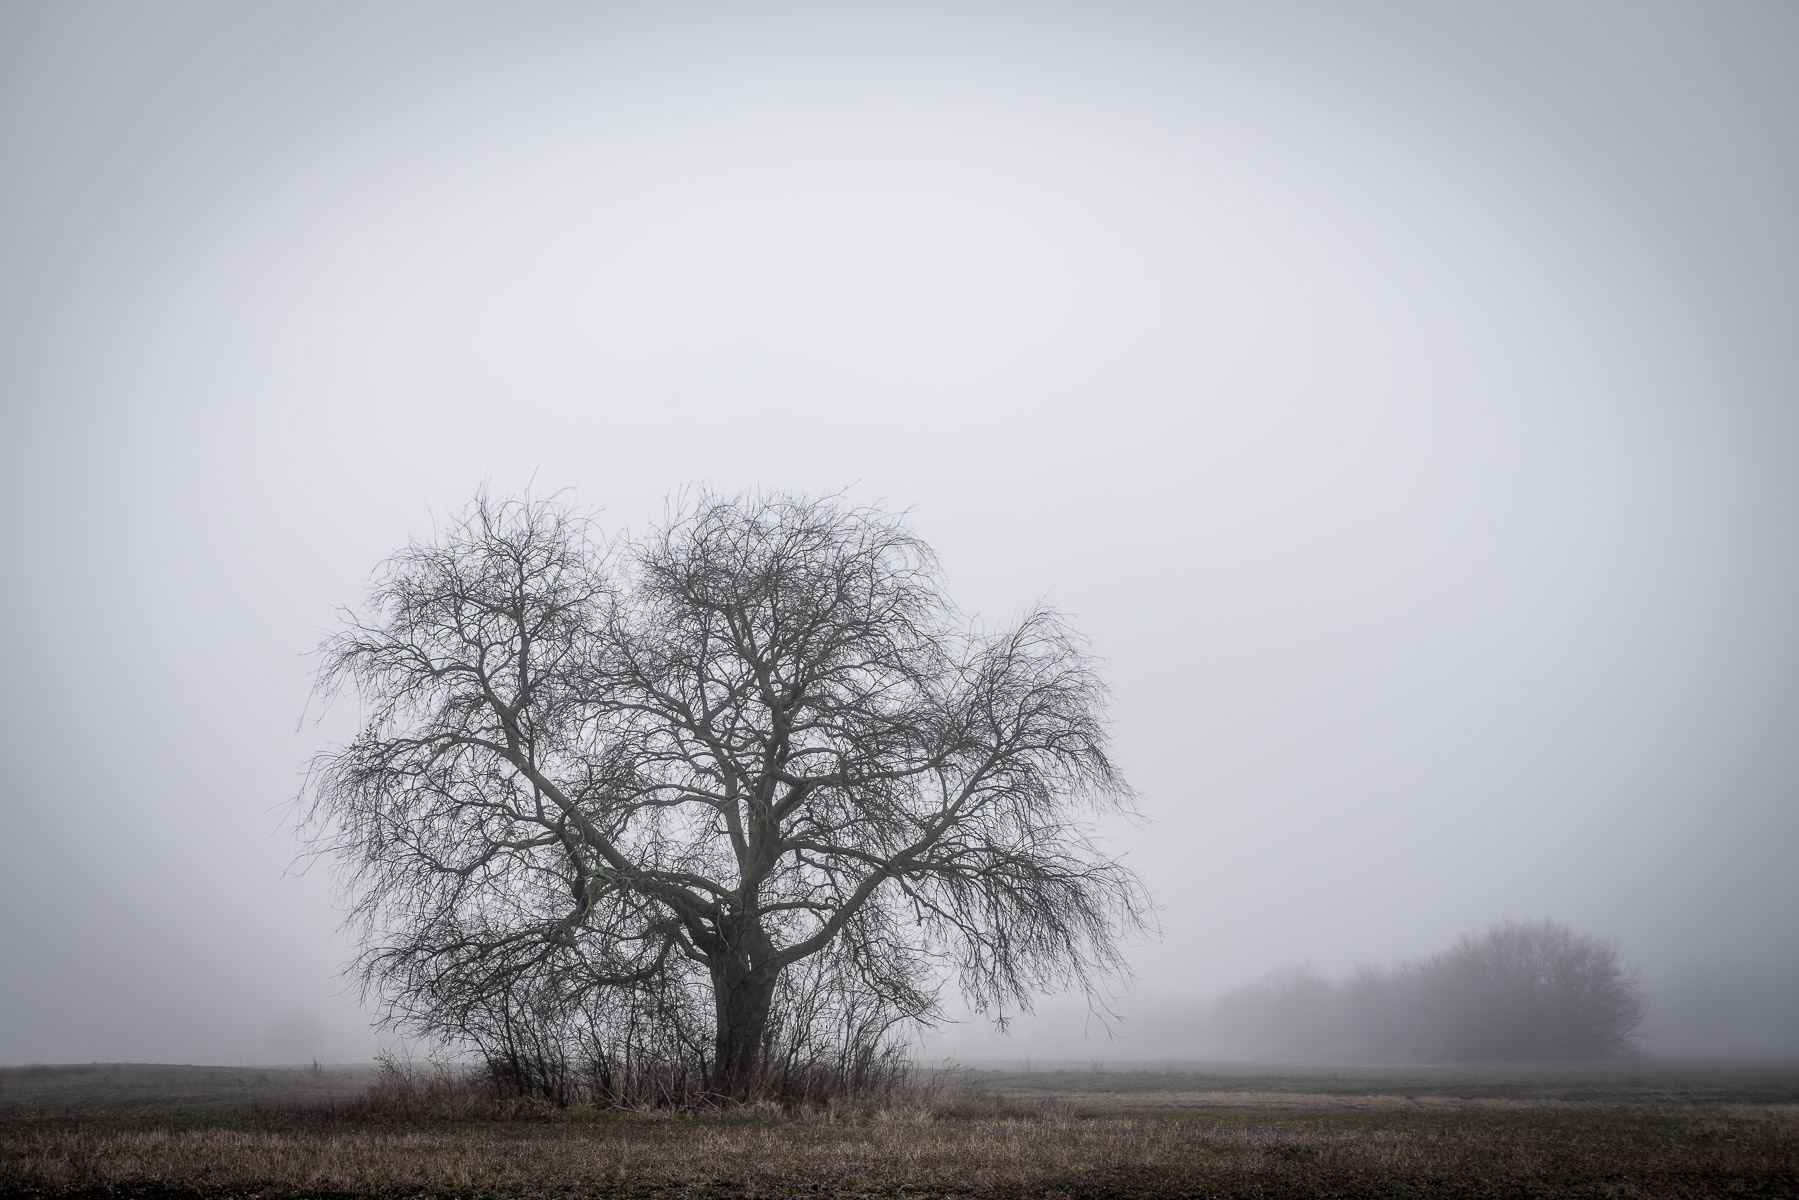 A tree in a foggy field near McKinney, Texas.